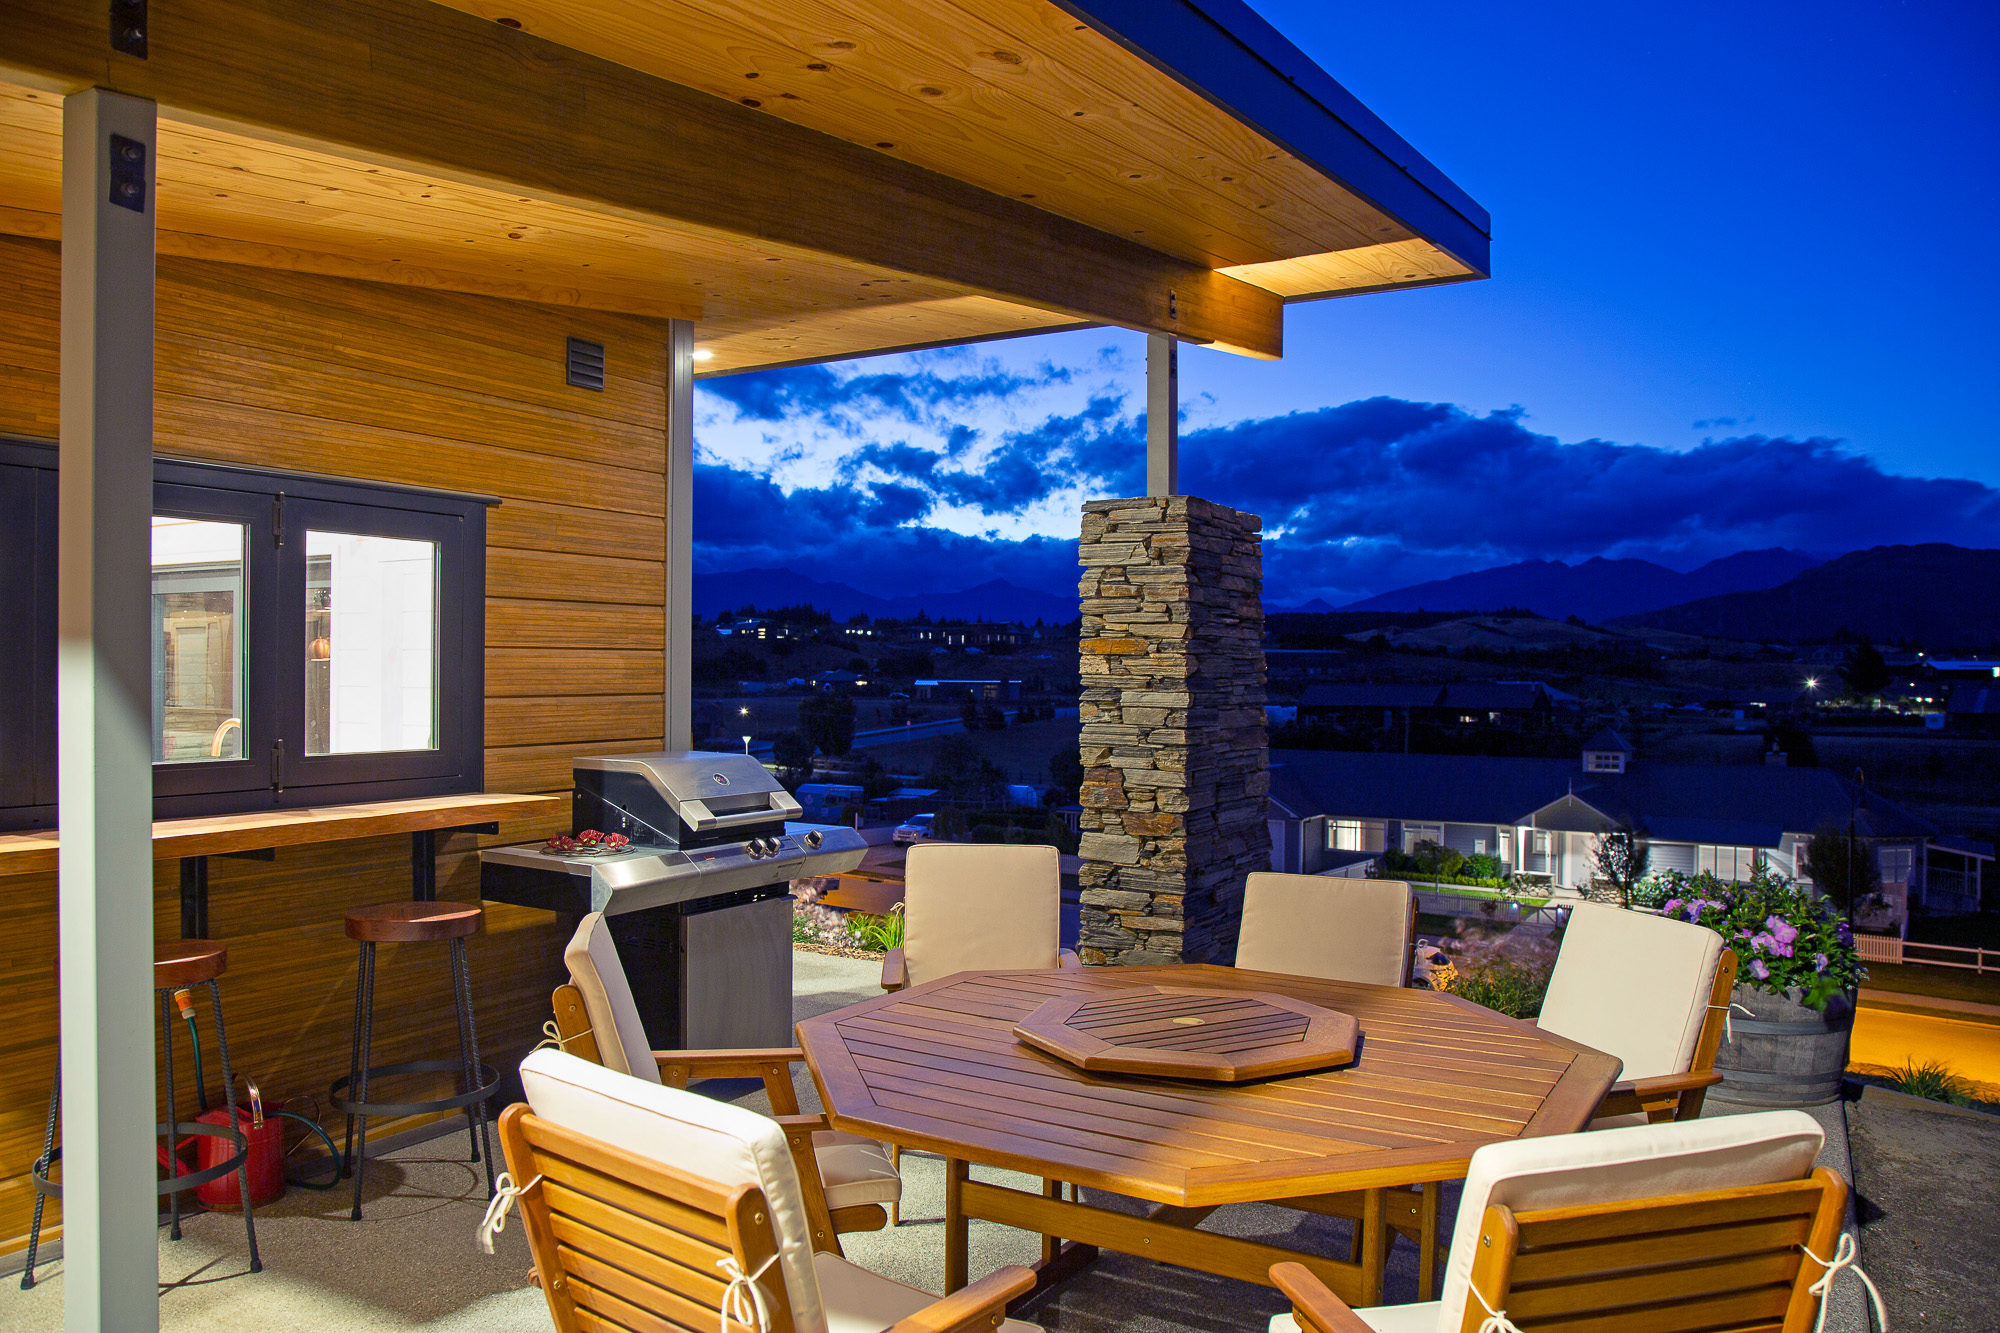 Outdoor living space with views